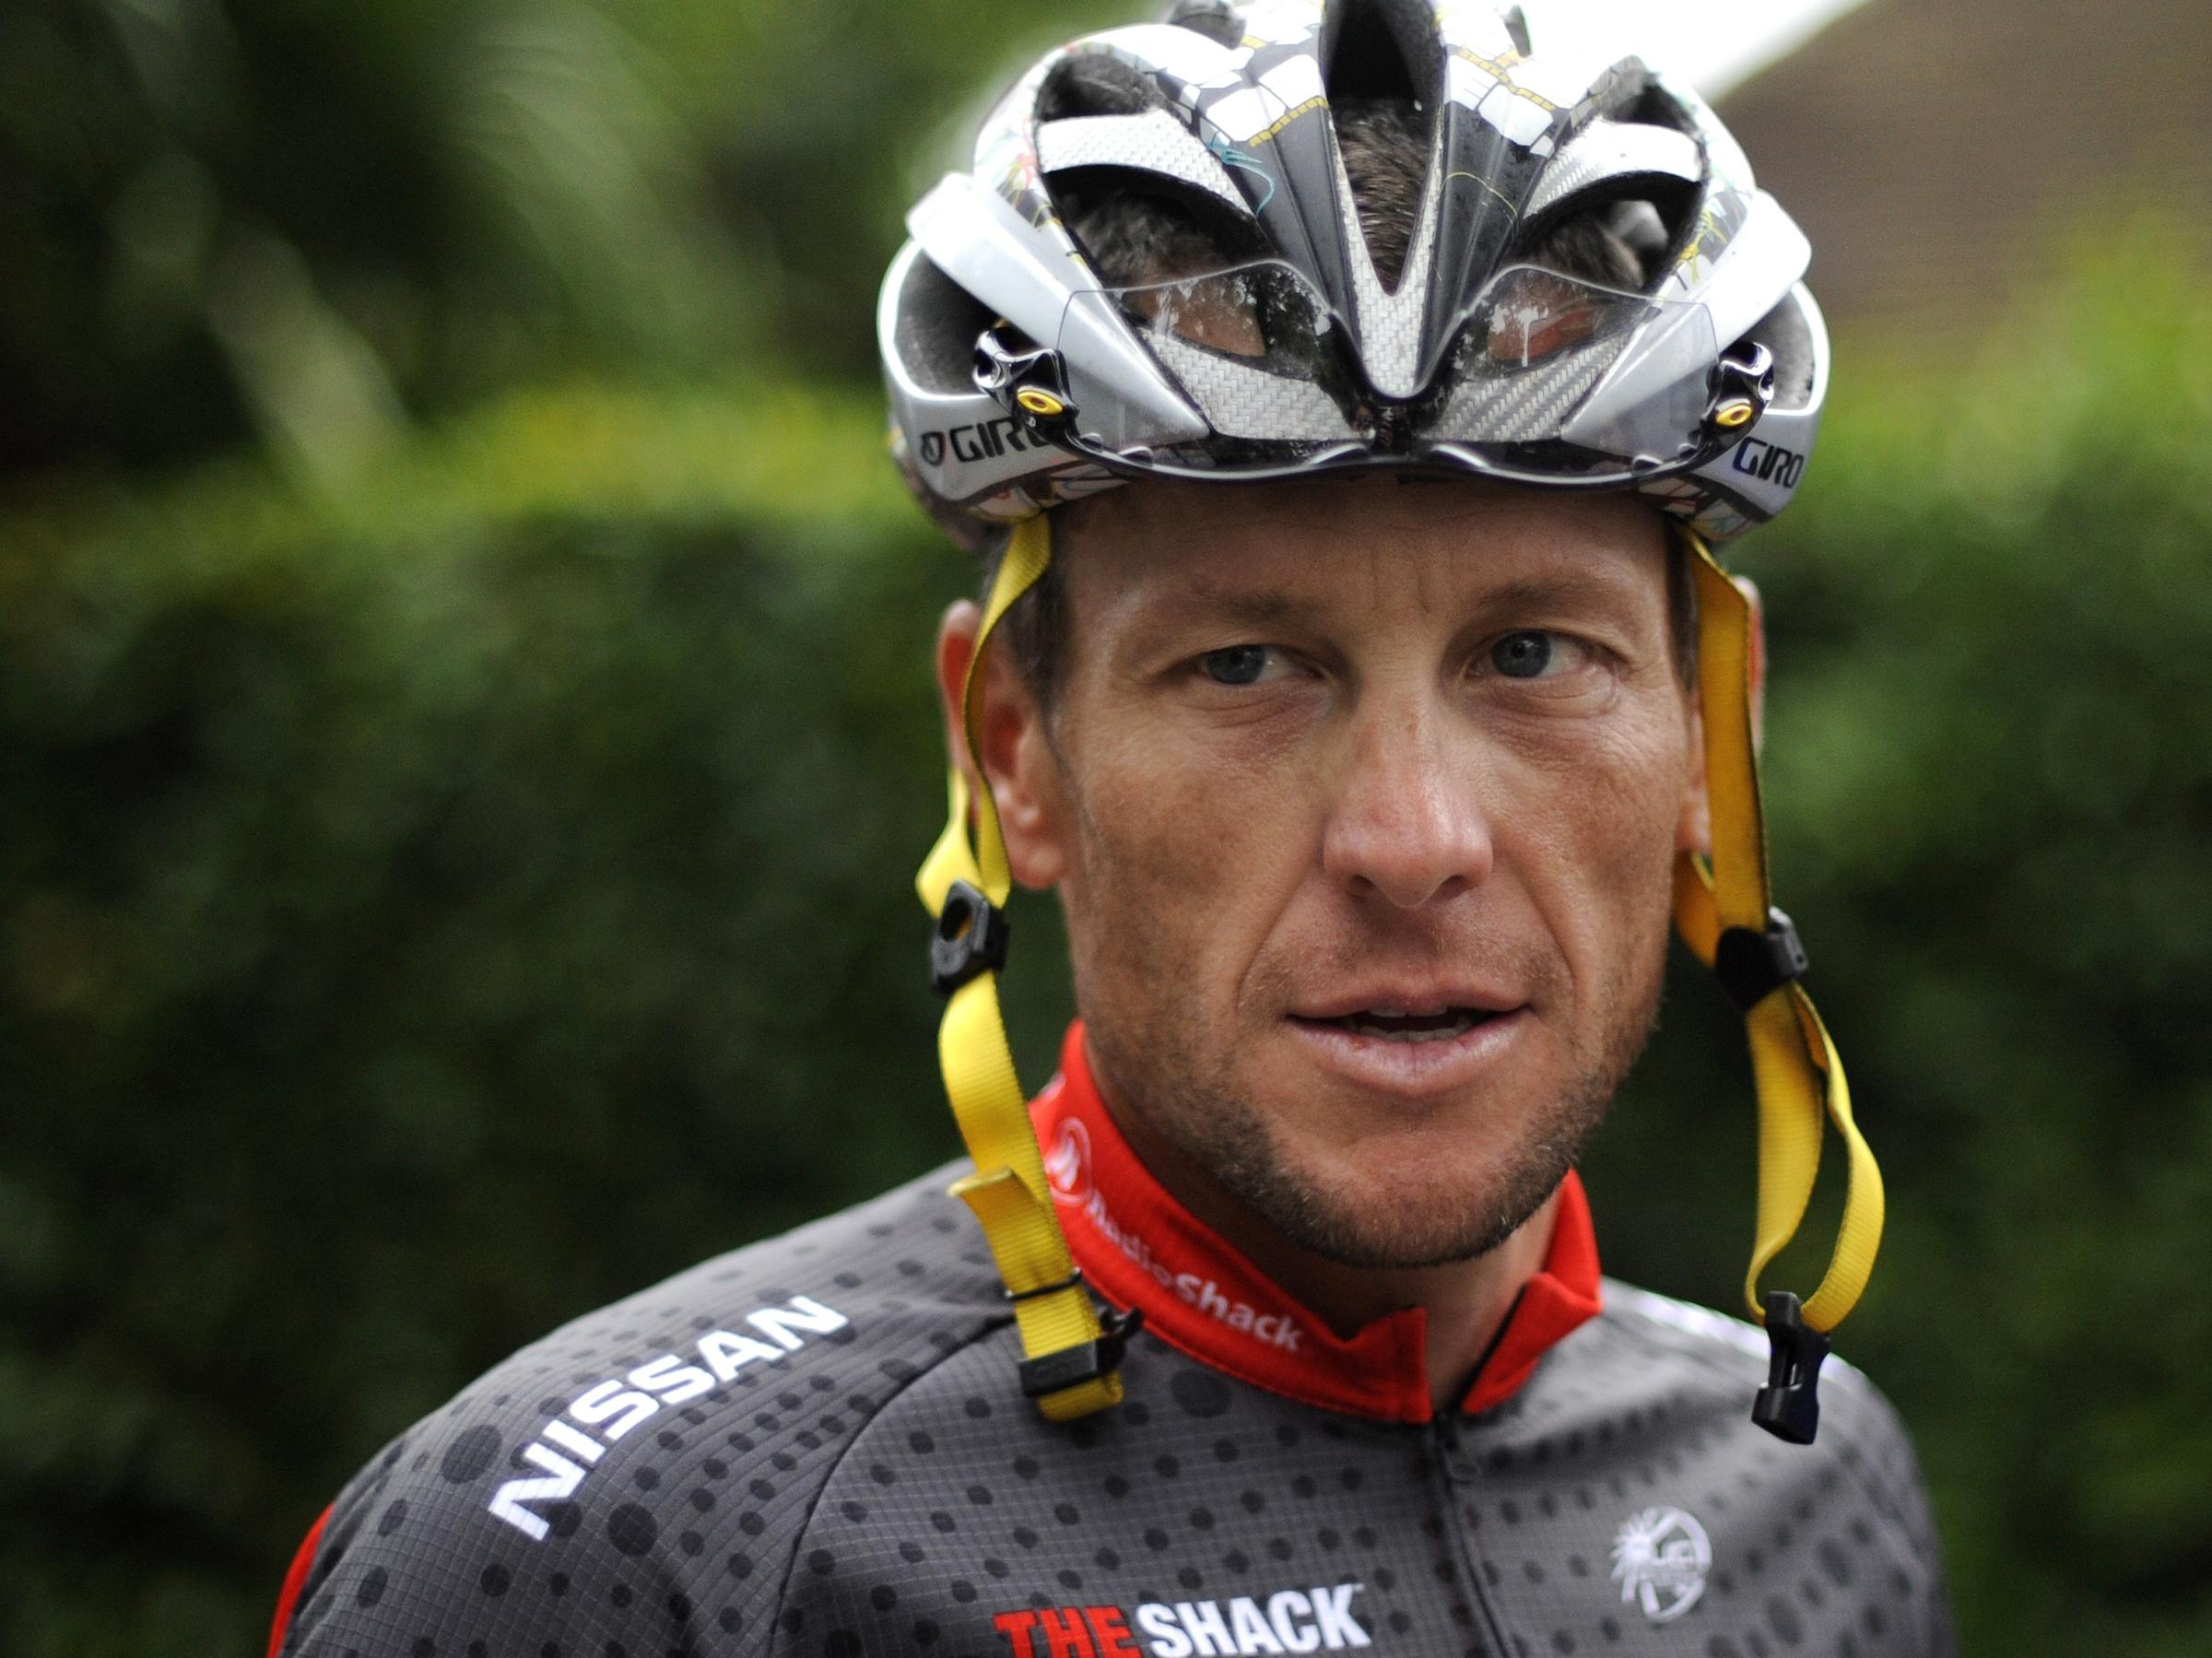 Lance Armstrong Libros Book News Does Lance Armstrong Have The Right To Lie In His